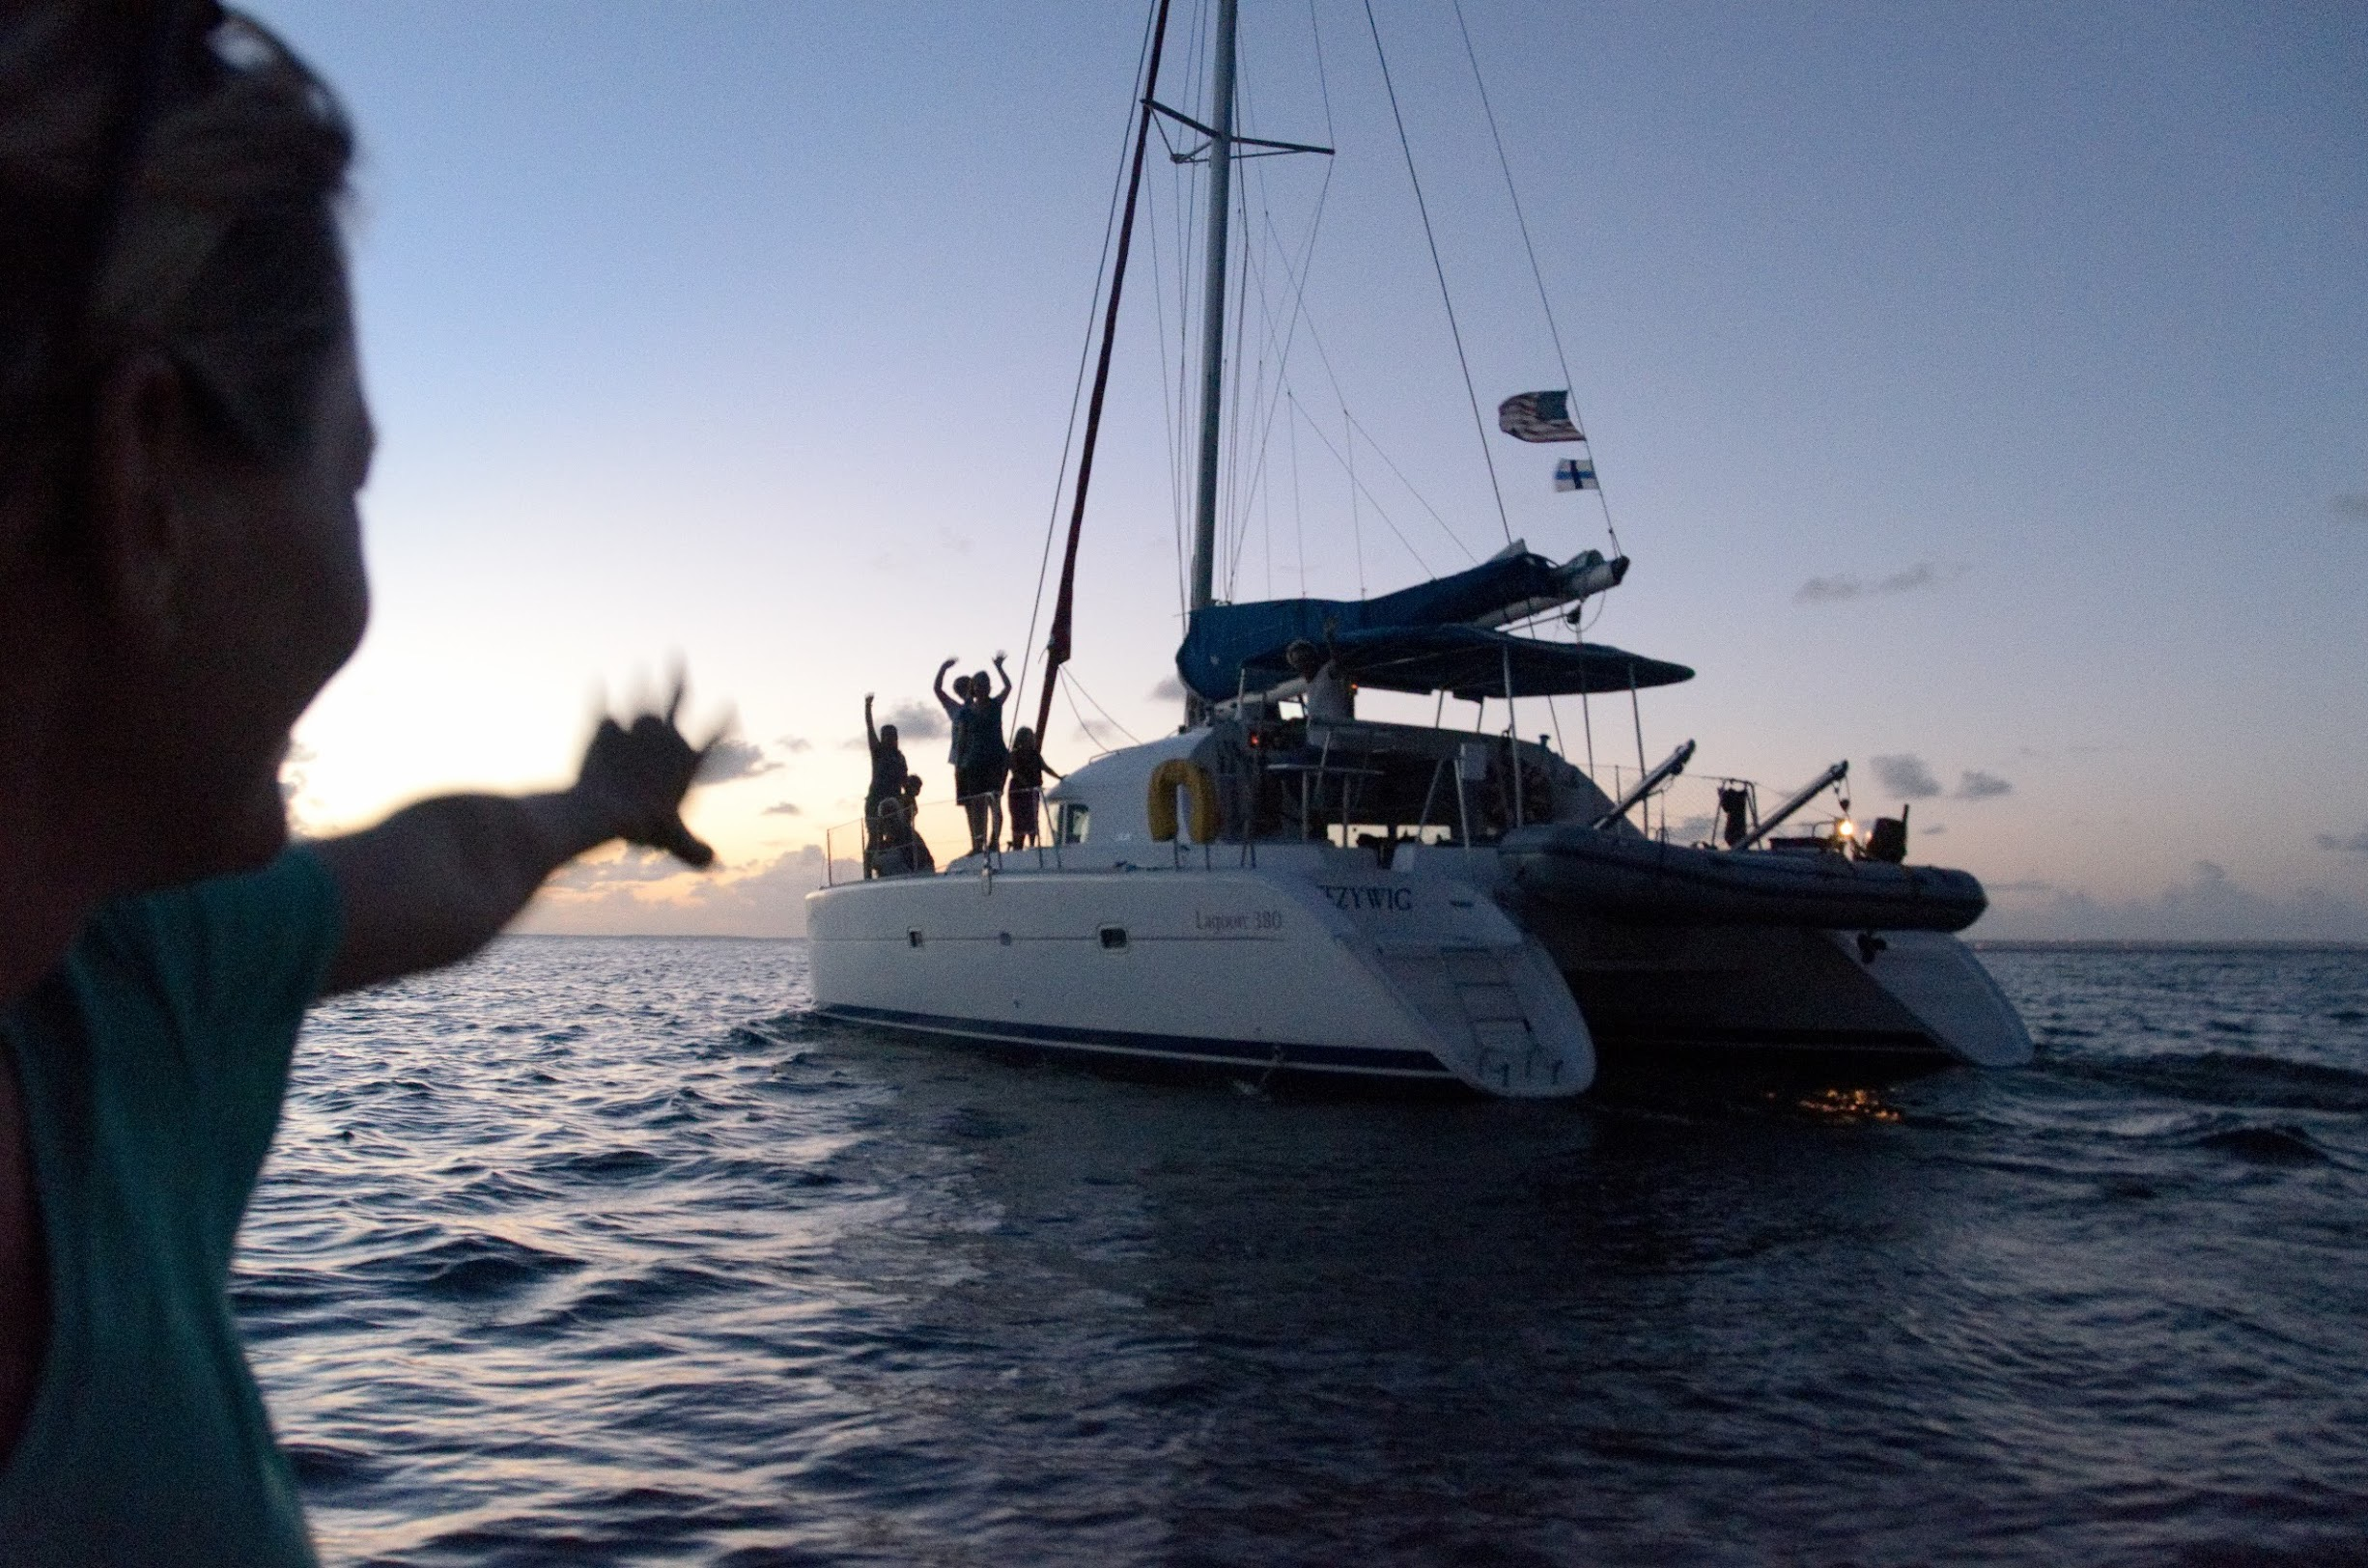 view from the other lens: our friends wishing us well as we leave St. Martin. Photo by John Alonso.